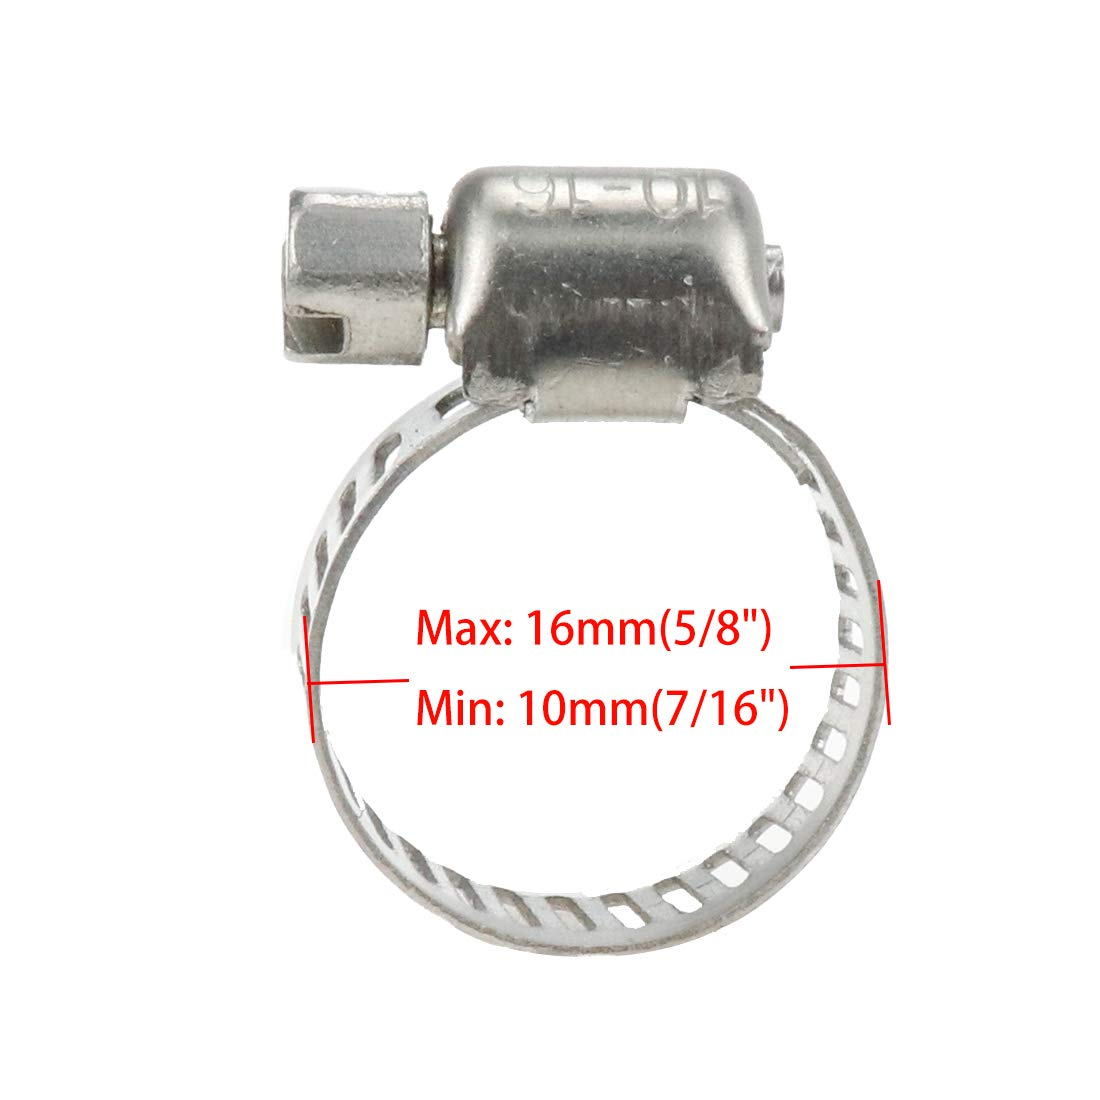 Air Hose Water Pipe Quluxe 304 Stainless Steel Hose Clamps Adjustable Pipe Tuube Clamps Minimum Diameter 7//16 Inch Maximum Diameter 5//8 Inch for Gas Hose Automotive Fuel Hose /& Water-tap Hose